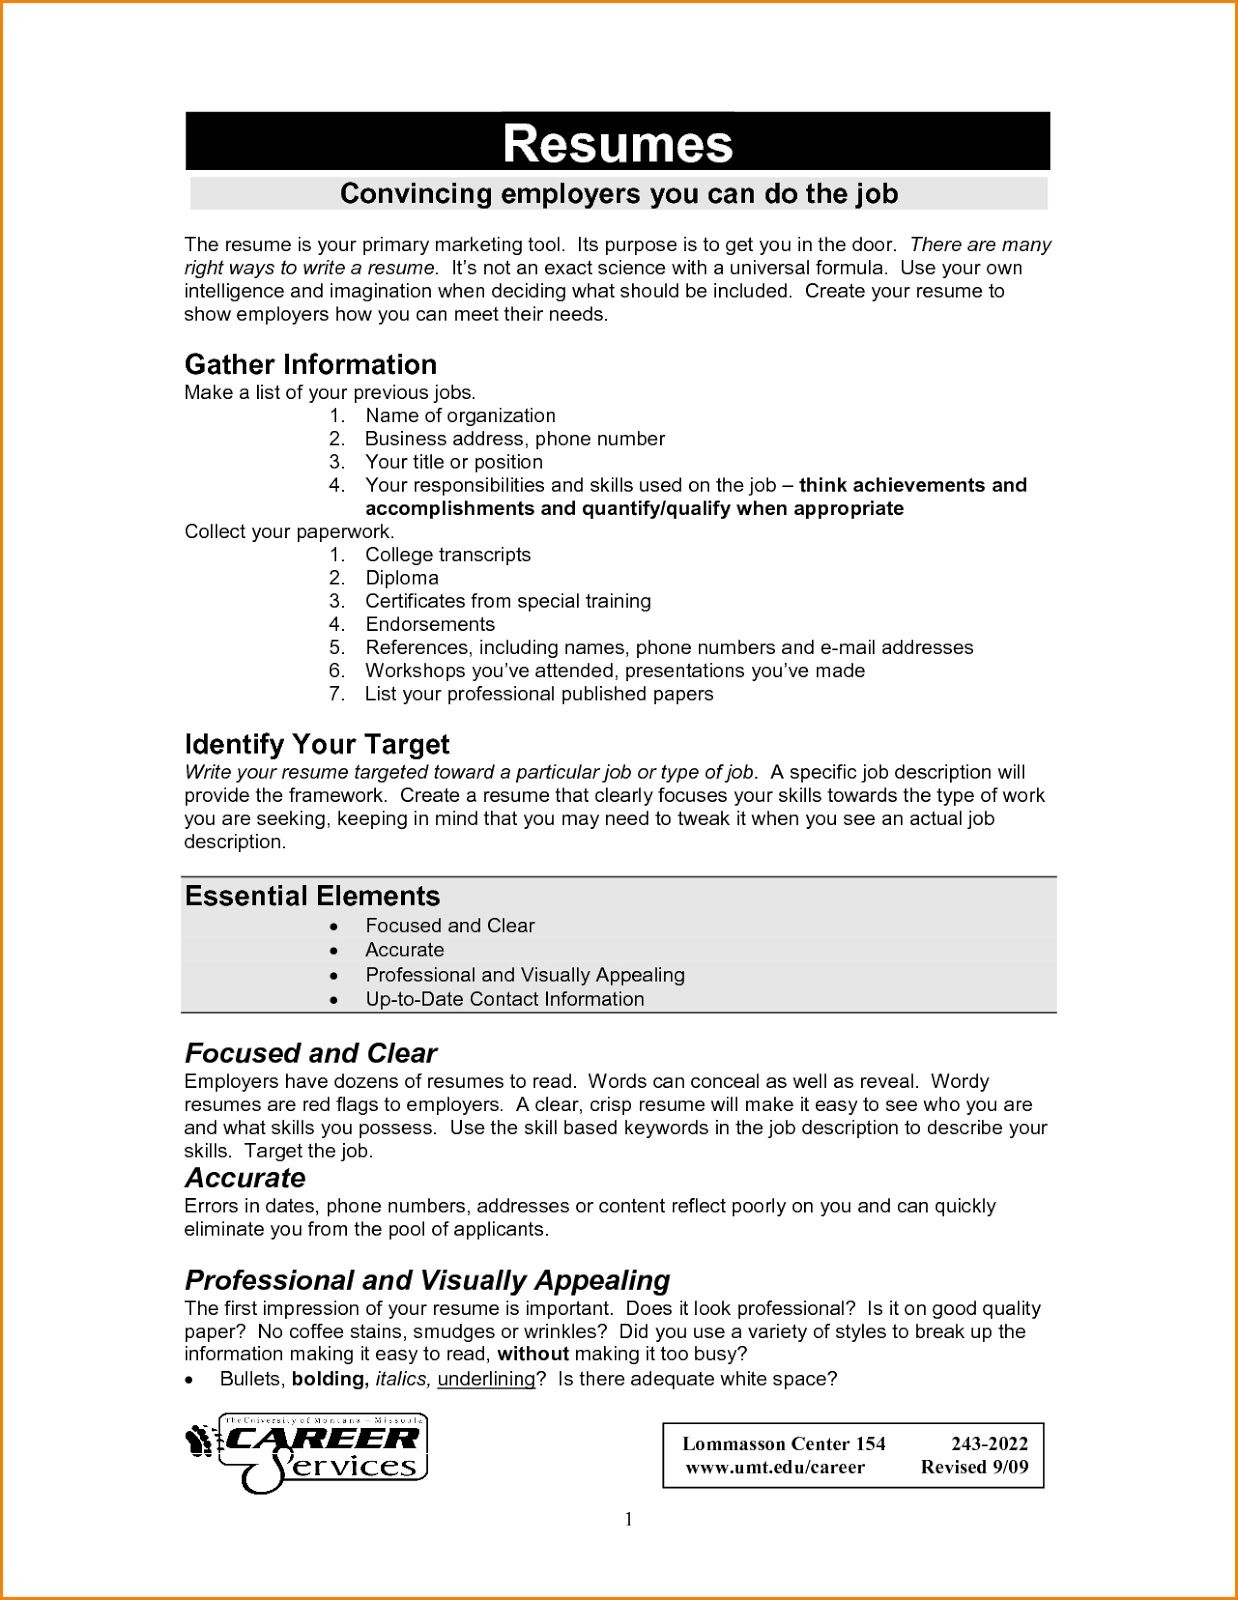 Simplifying Your Work With the Help of Resume Templates | Resume ...